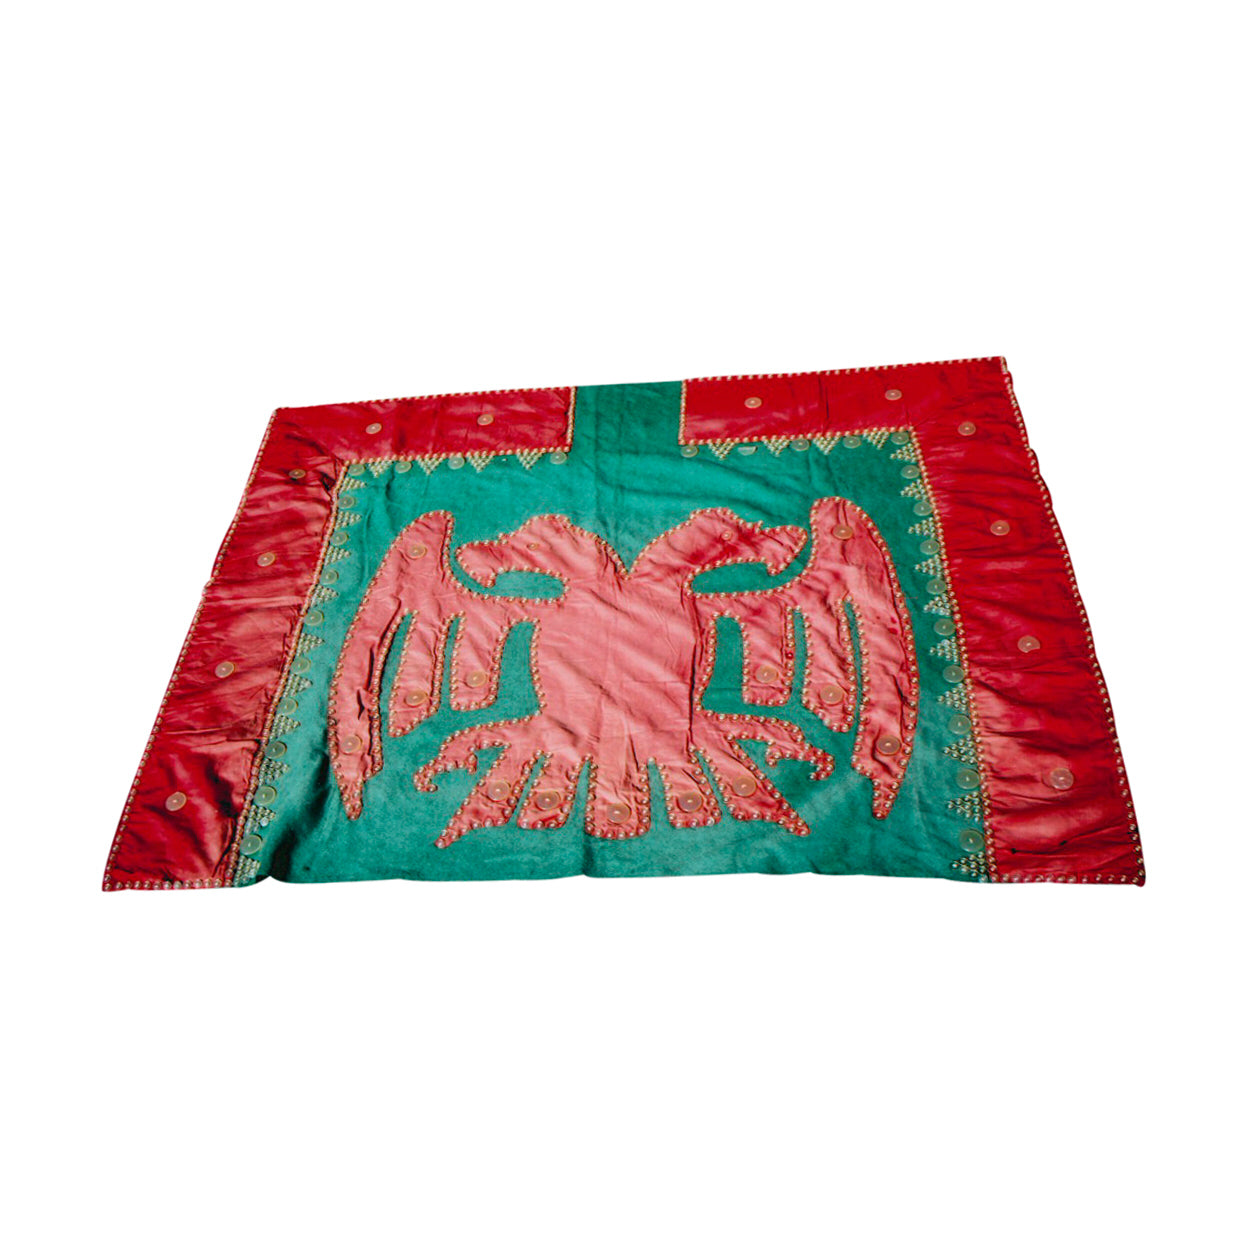 Button Blanket american indian other, blankets, button blankets, northwest coast